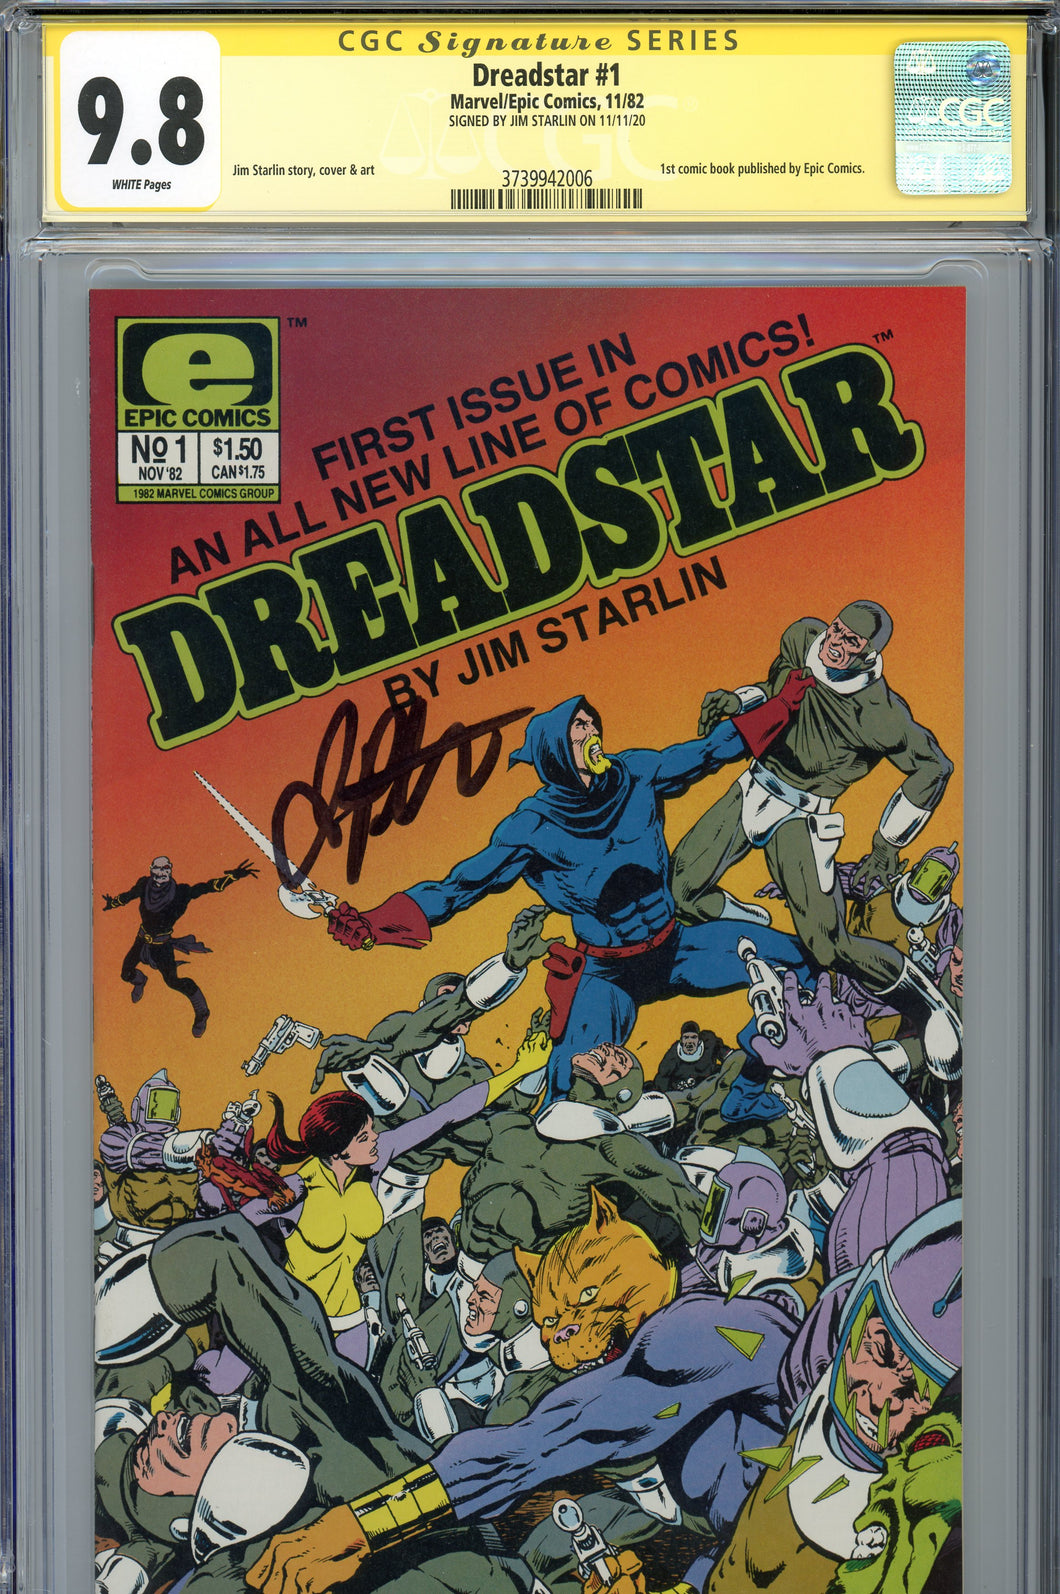 Dreadstar #1 CGC 9.8 SS Signed Starlin